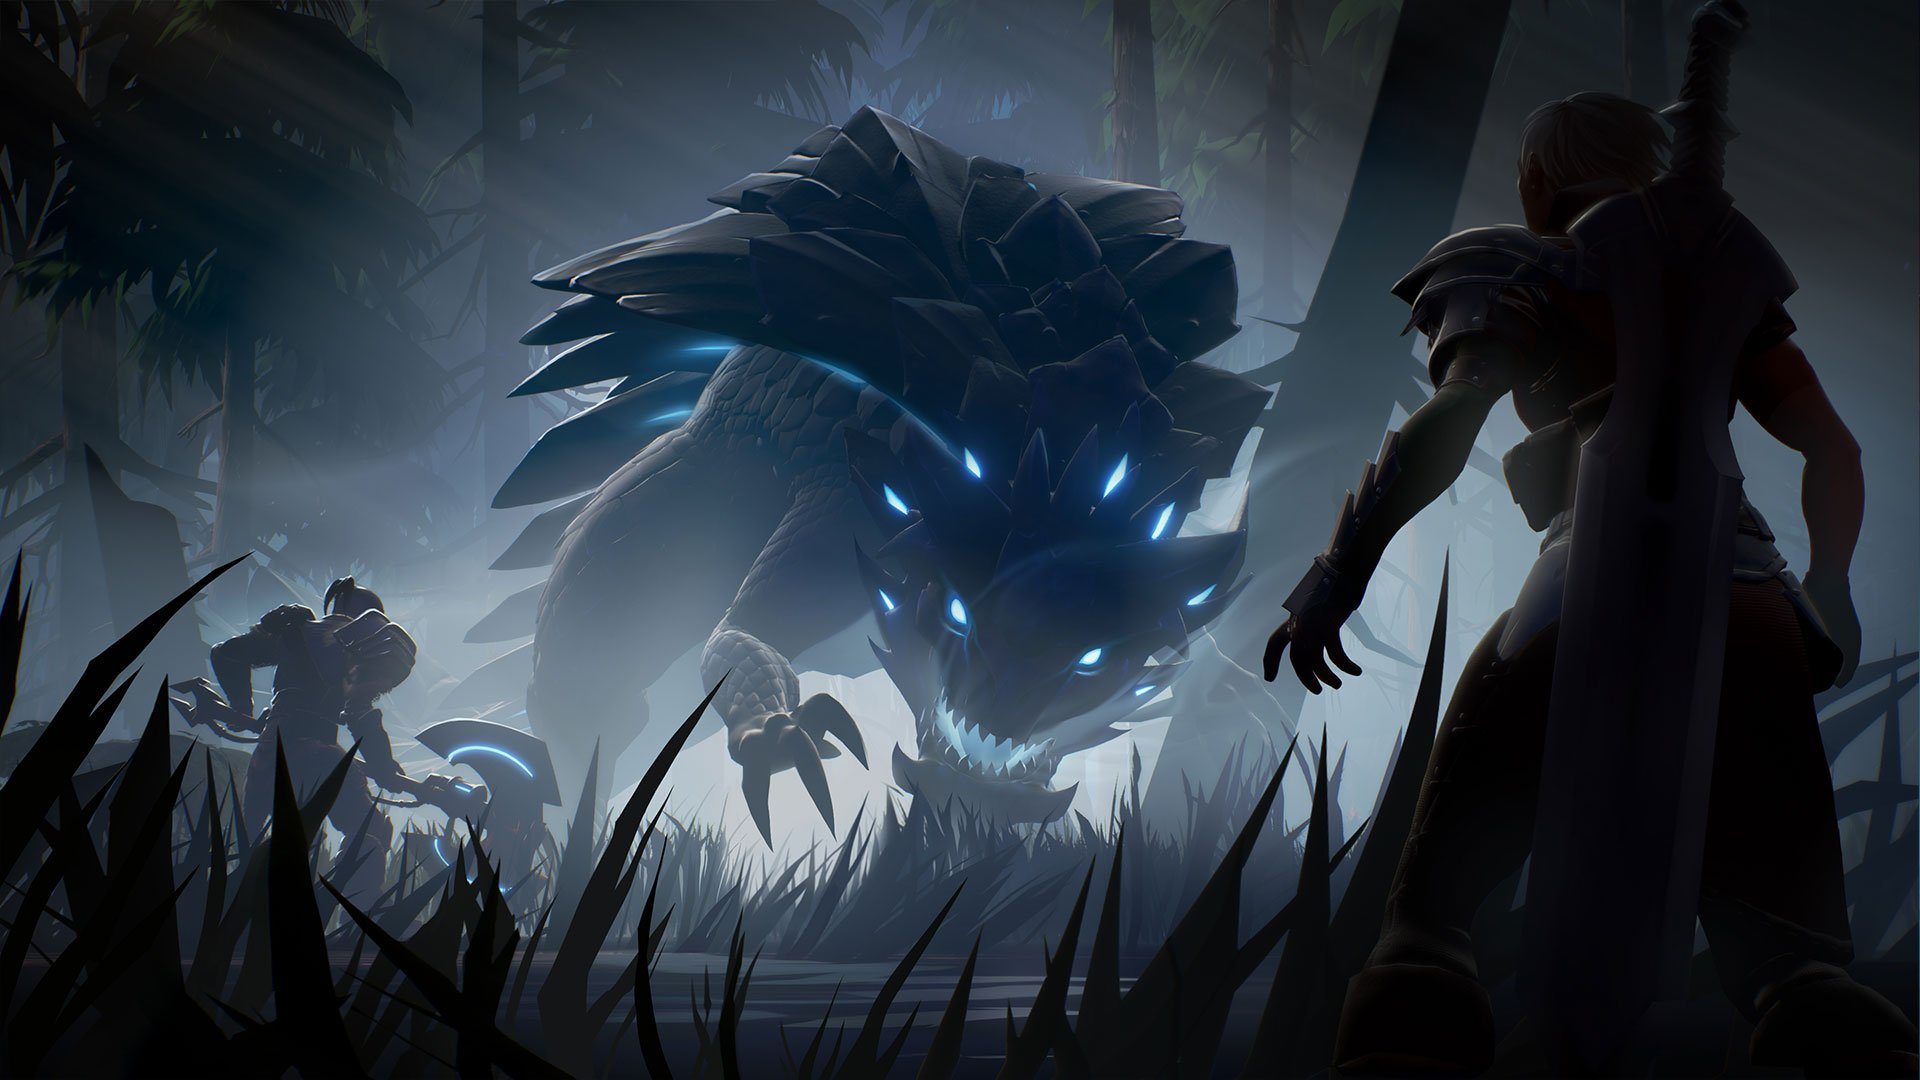 To get Heroic Dye in Dauntless, you'll need to defeat Heroic Behemoth types.